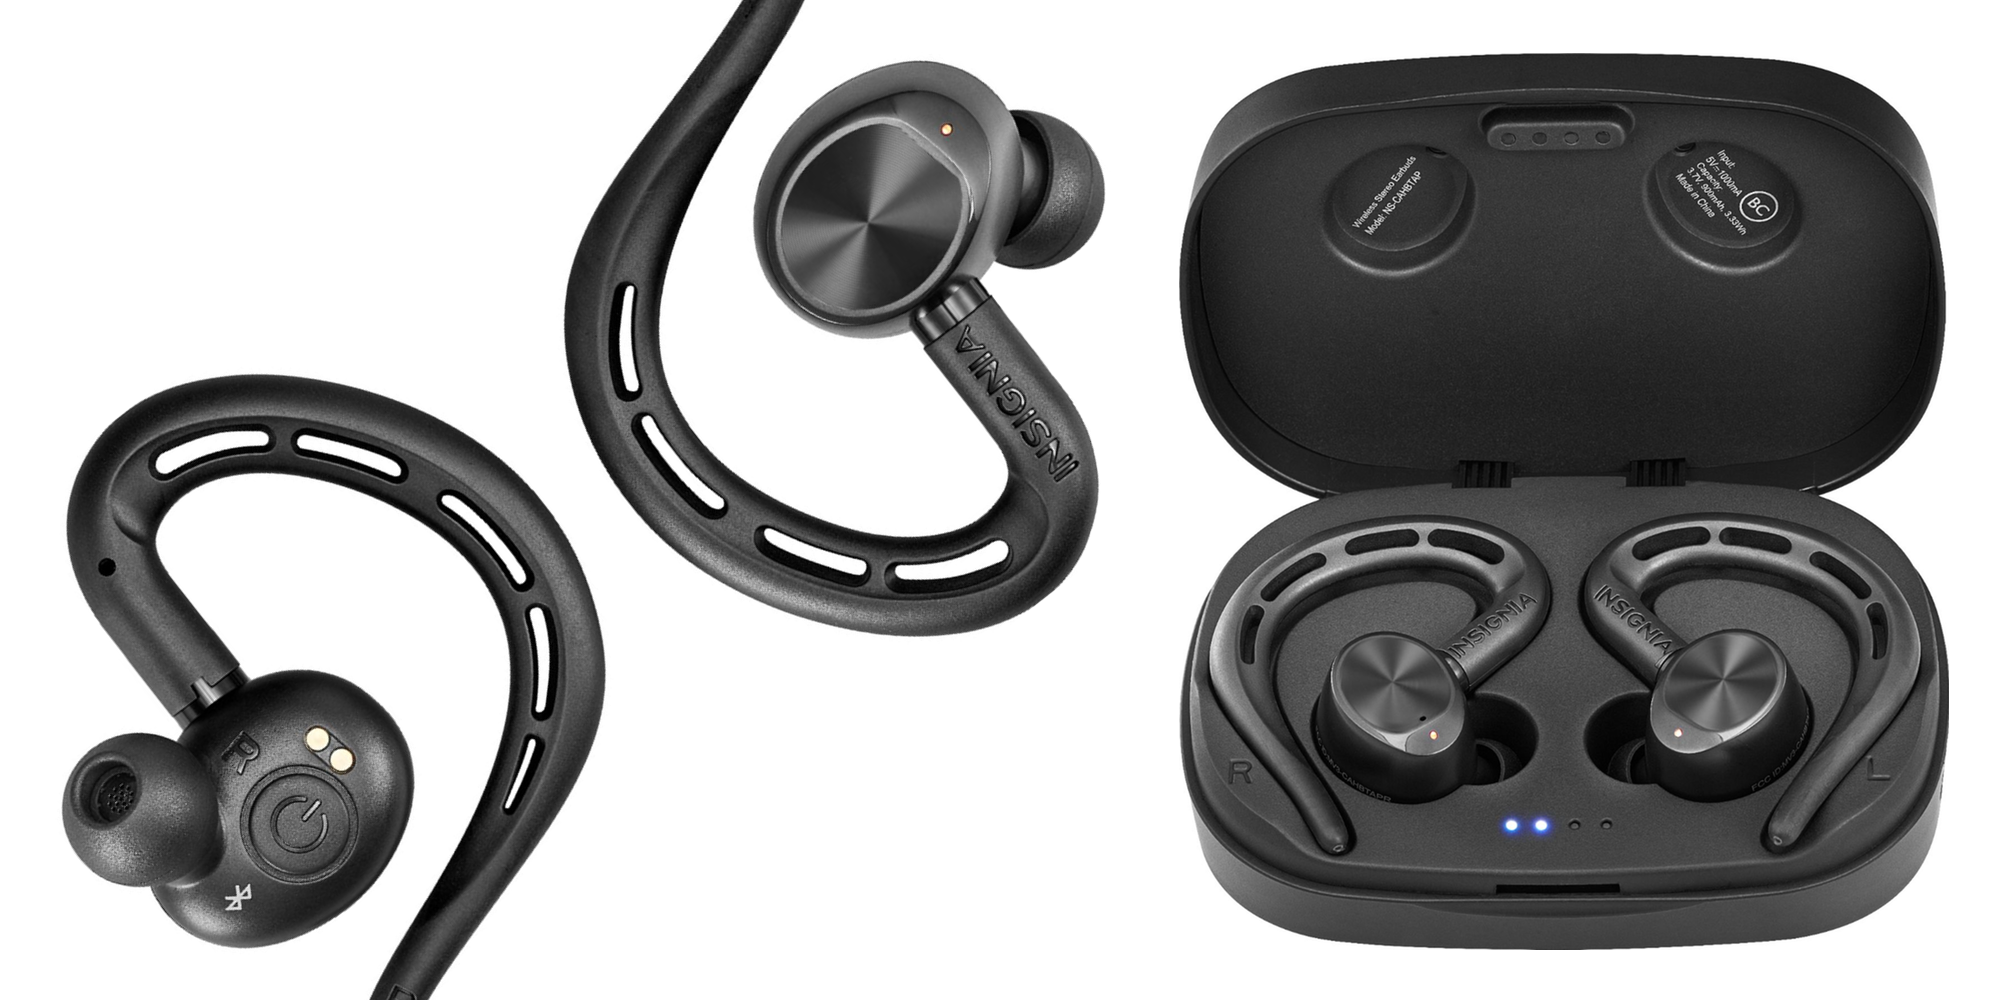 3129e39e71a Insignia True Wireless Bluetooth Earbuds get first price drop to $100 ($30  off) - 9to5Toys